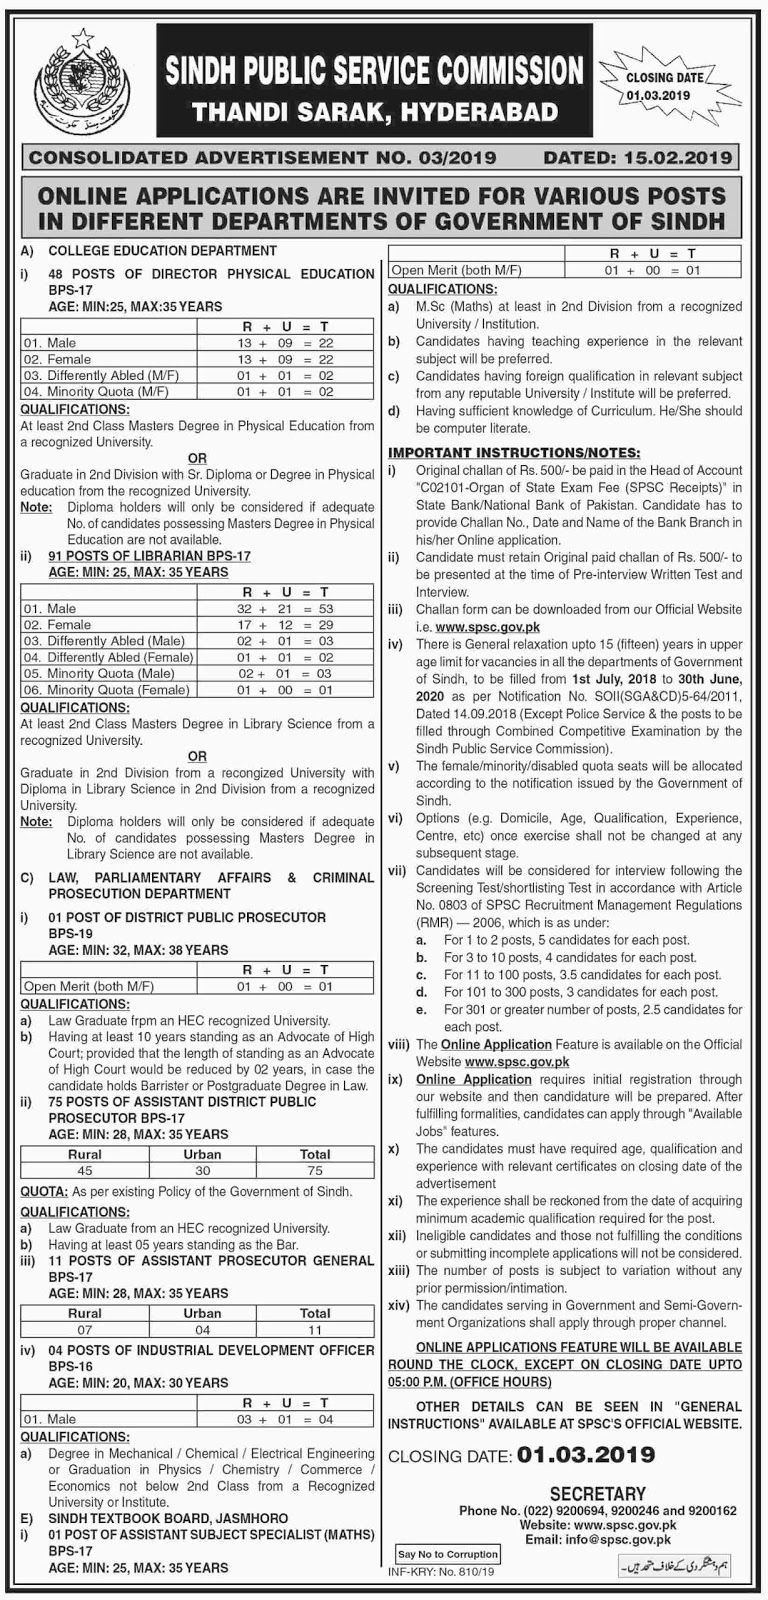 SPSC Jobs 2019 Adv 03, SPSC Jobs Librarian 2019, spsc jobs 2019 February, Sindh Public Service Commission Jobs